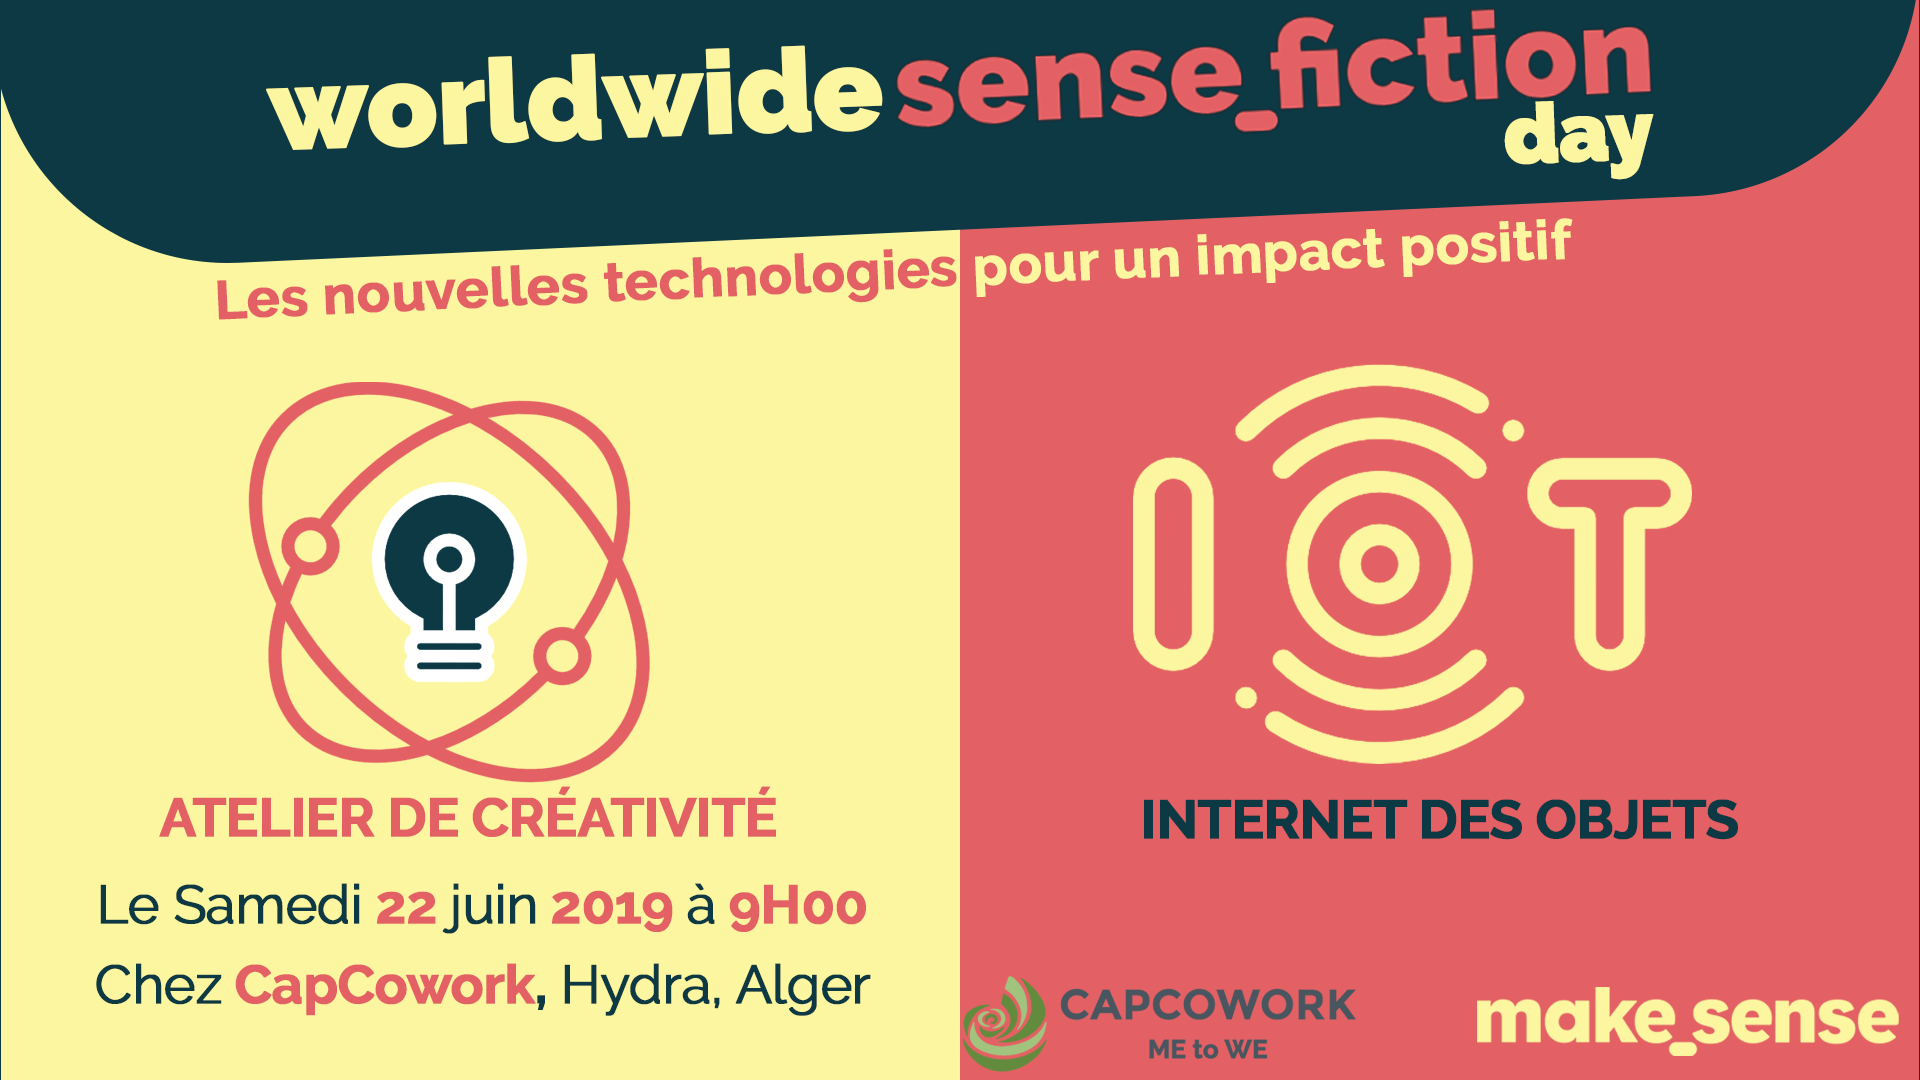 Image de l'événement : worldwide sense_fiction day: Tech for Good